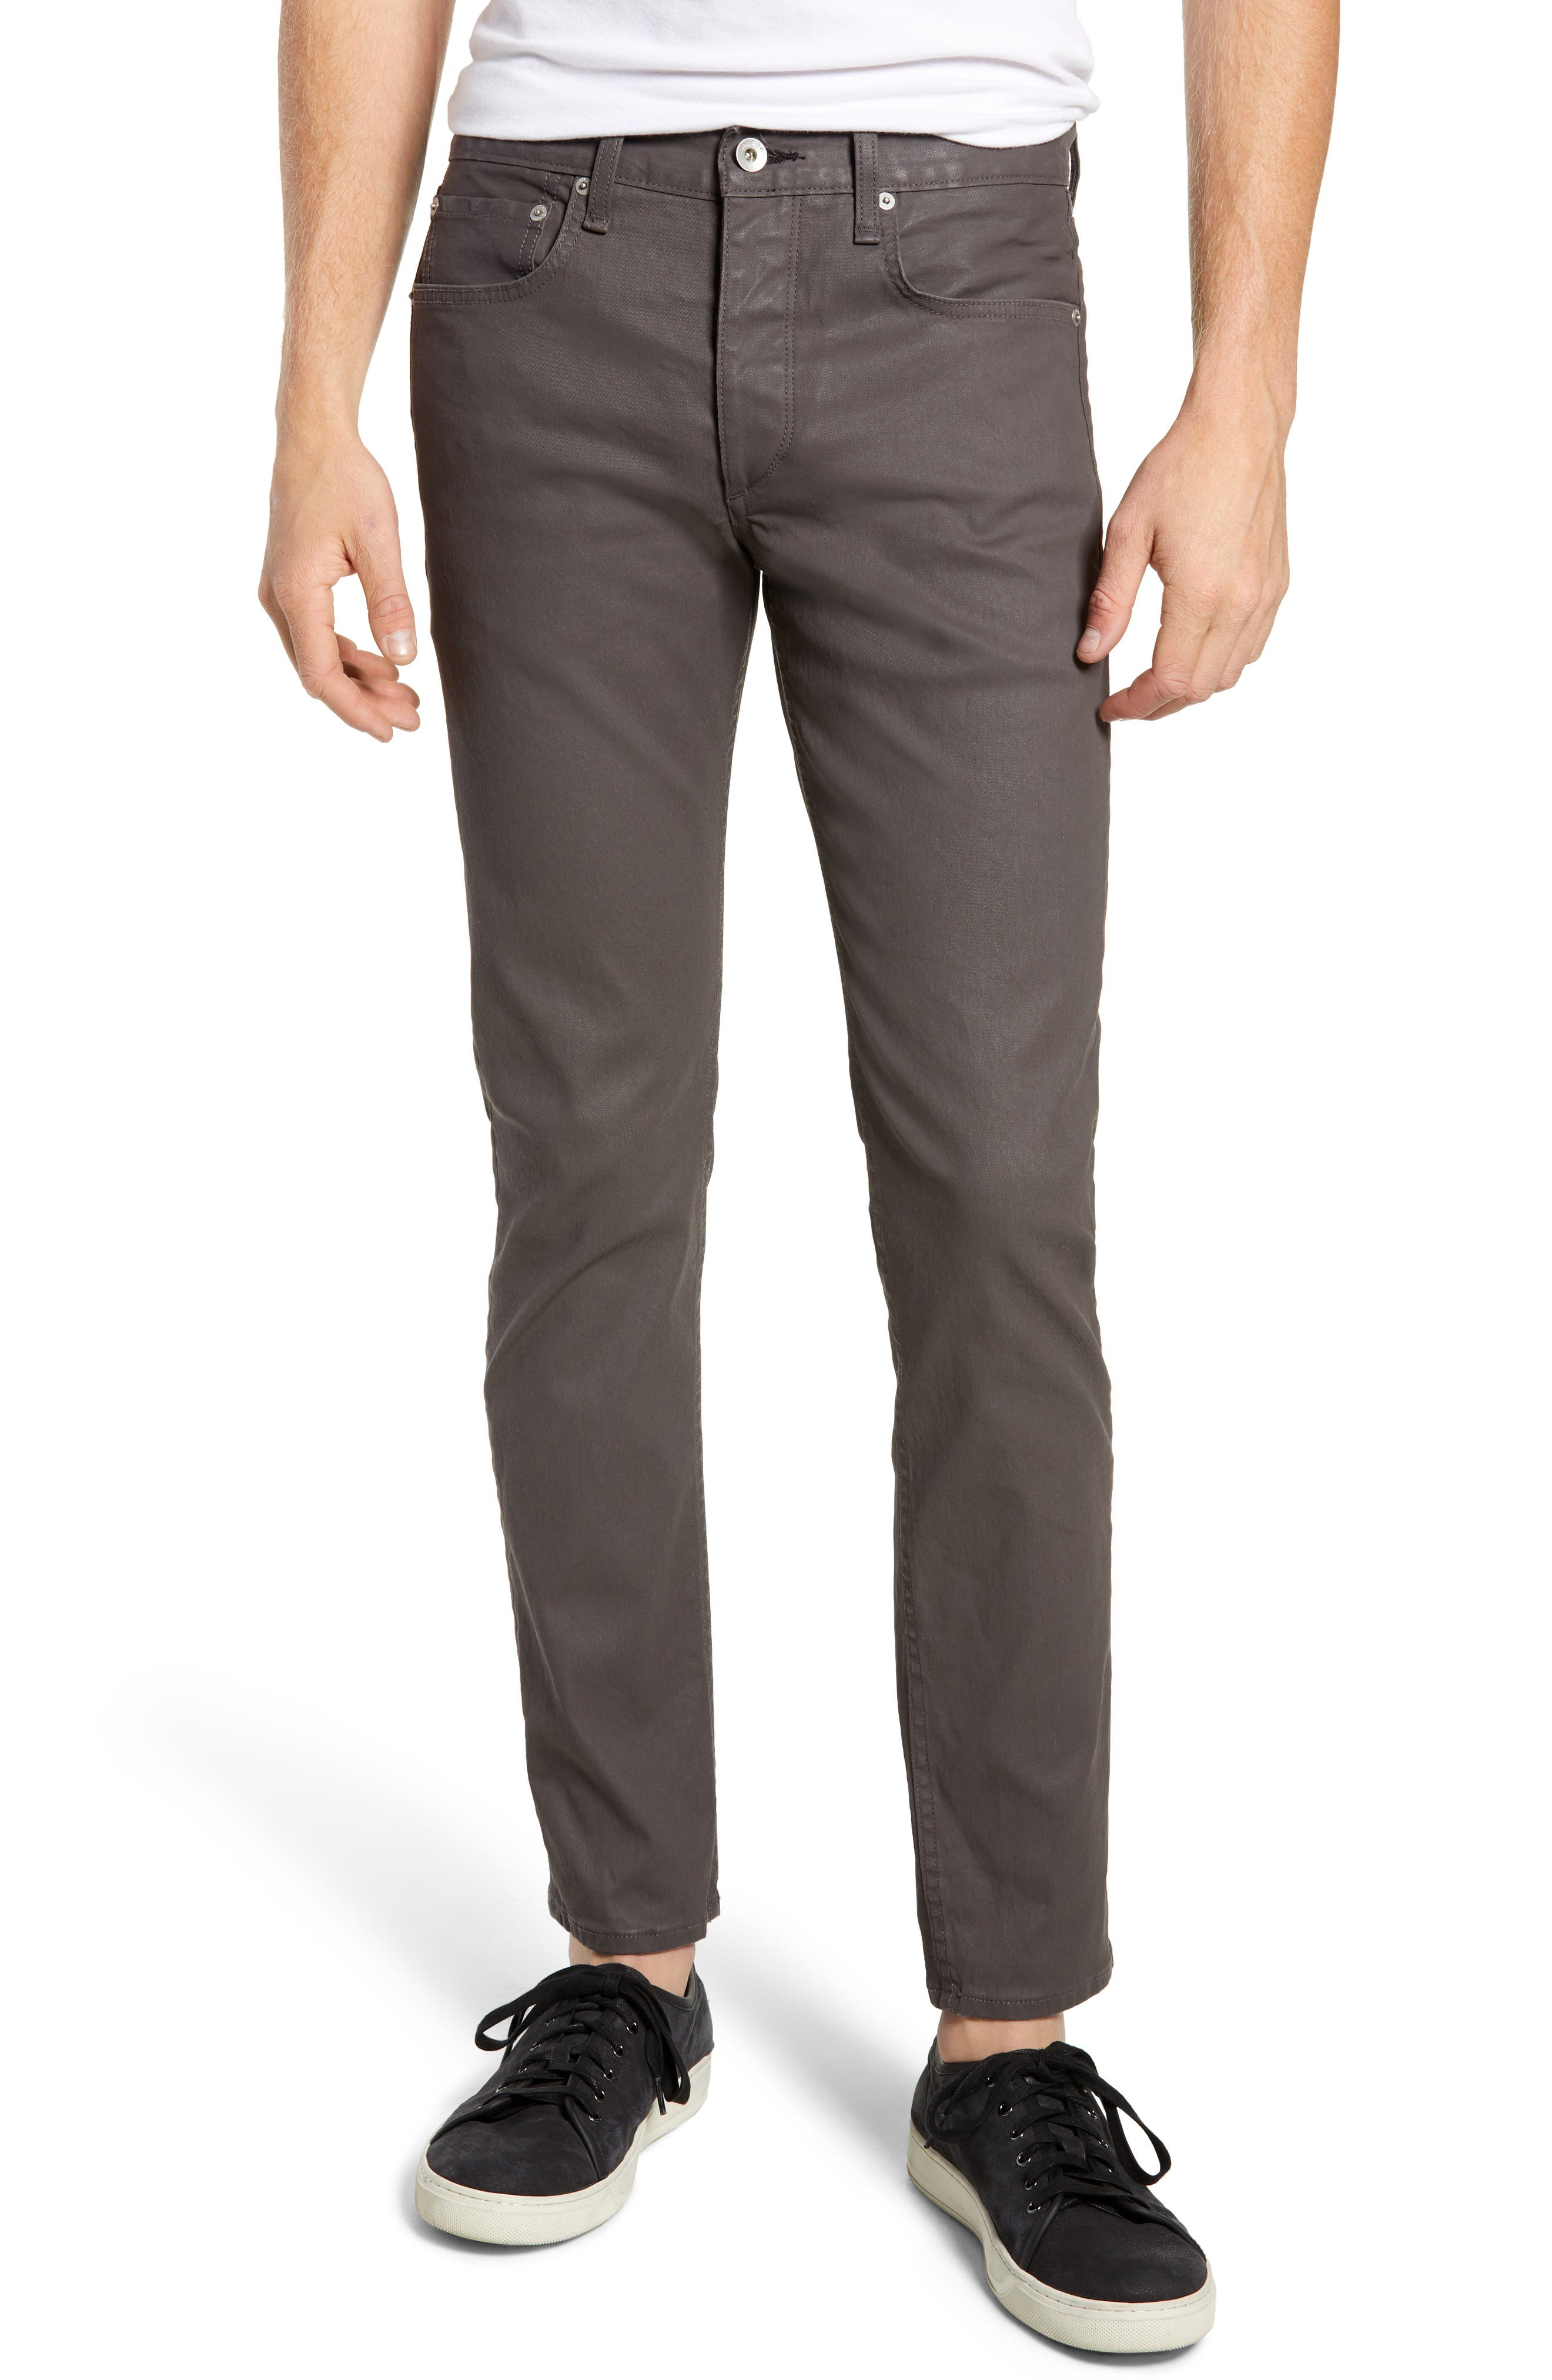 Fit 2 Slim Fit Pants,                         Main,                         color, COATED CLAY